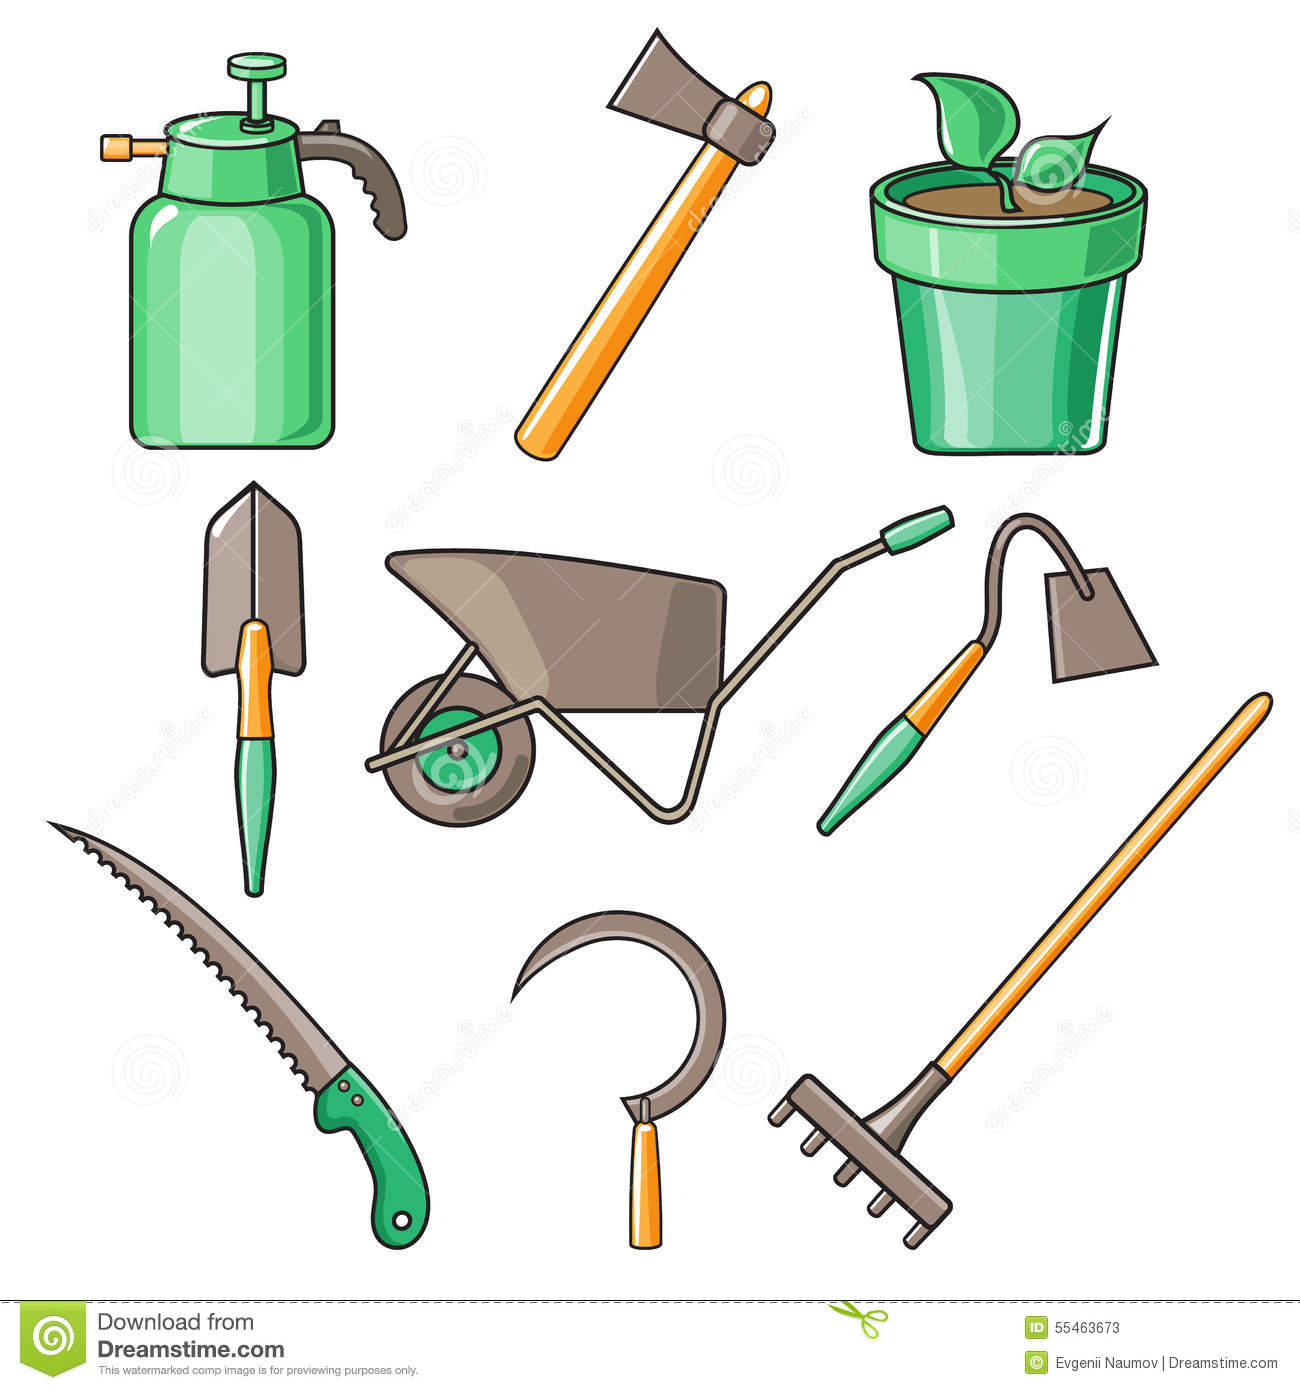 Garden Tools Flat Design Illustration Stock Vector Image